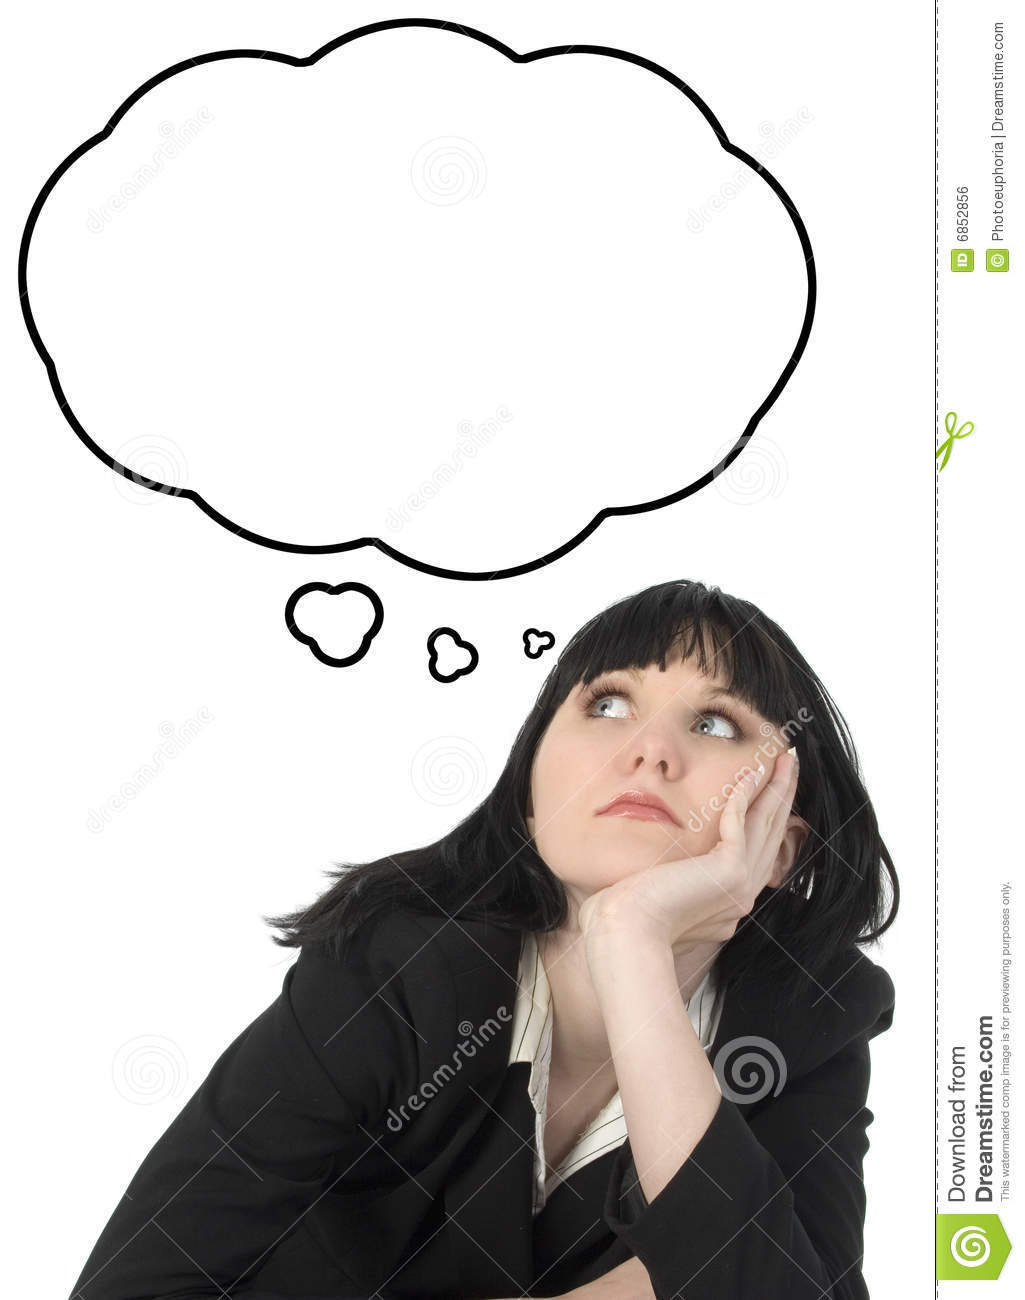 person thinking with thought bubble | clipart panda - free clipart